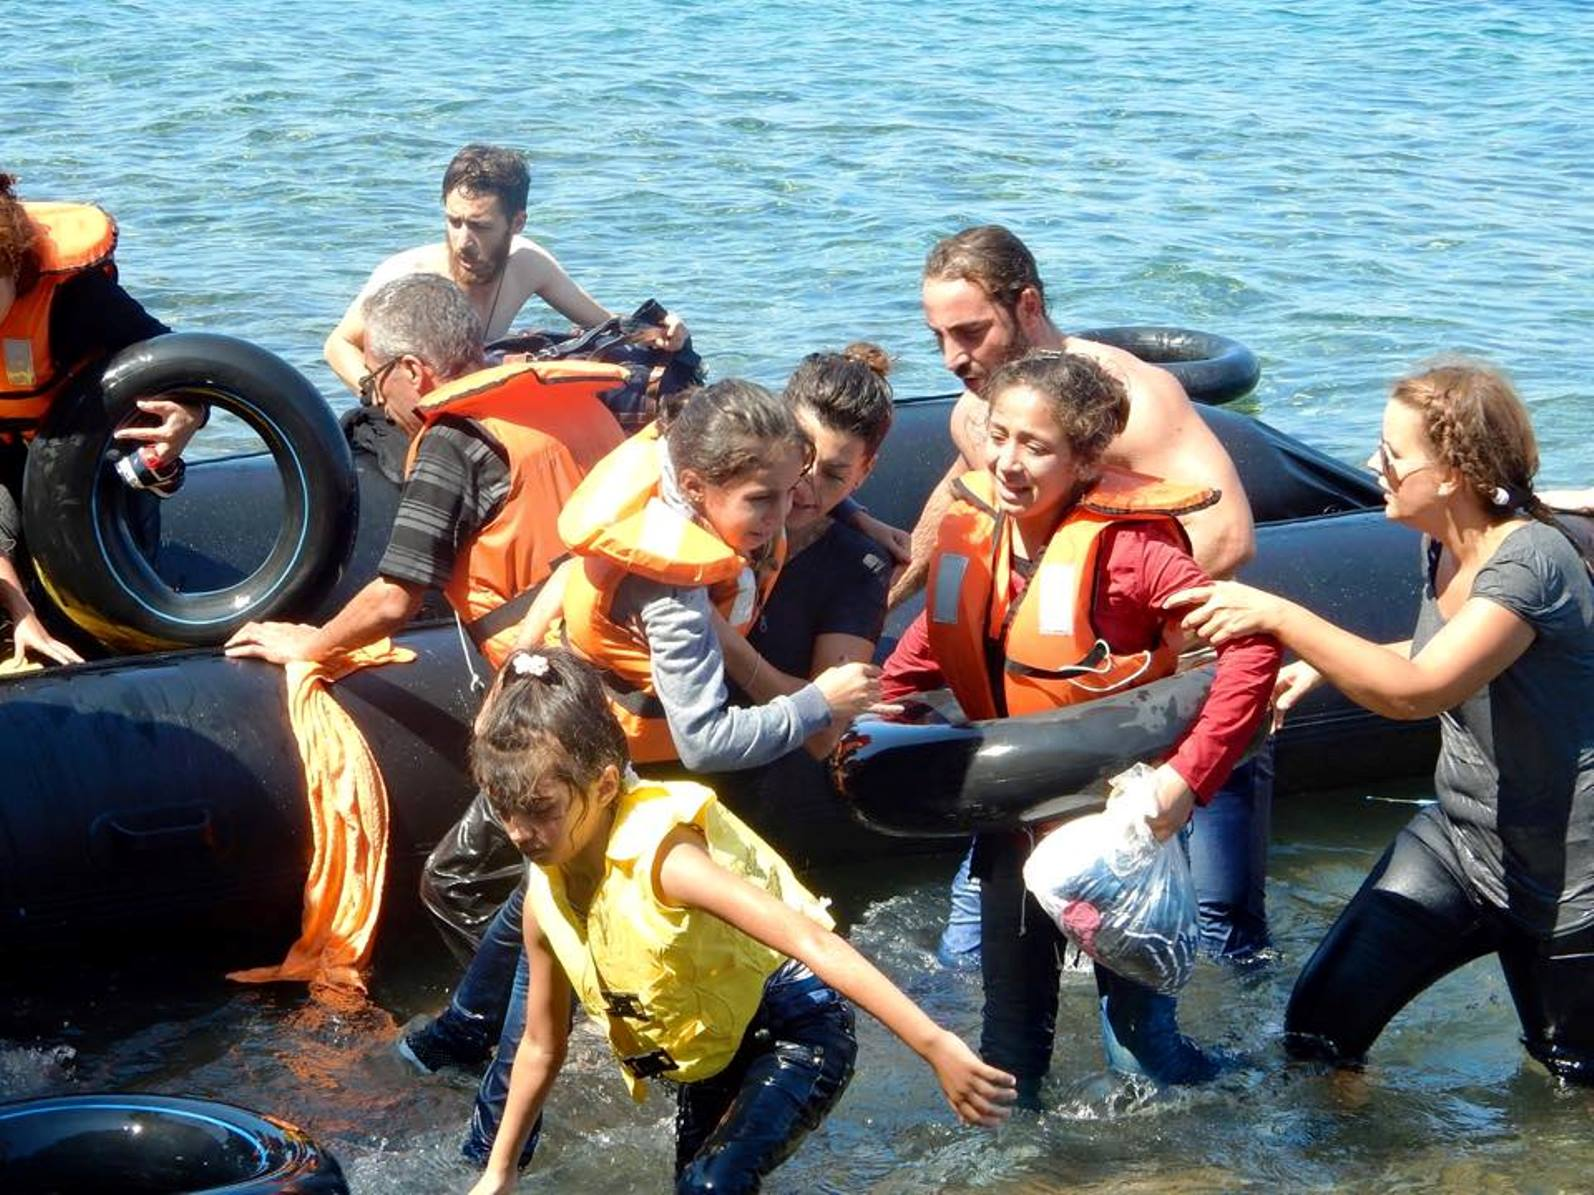 IsraAID rescuing refugees from capsized boat off Greek coast. Photo: courtesy